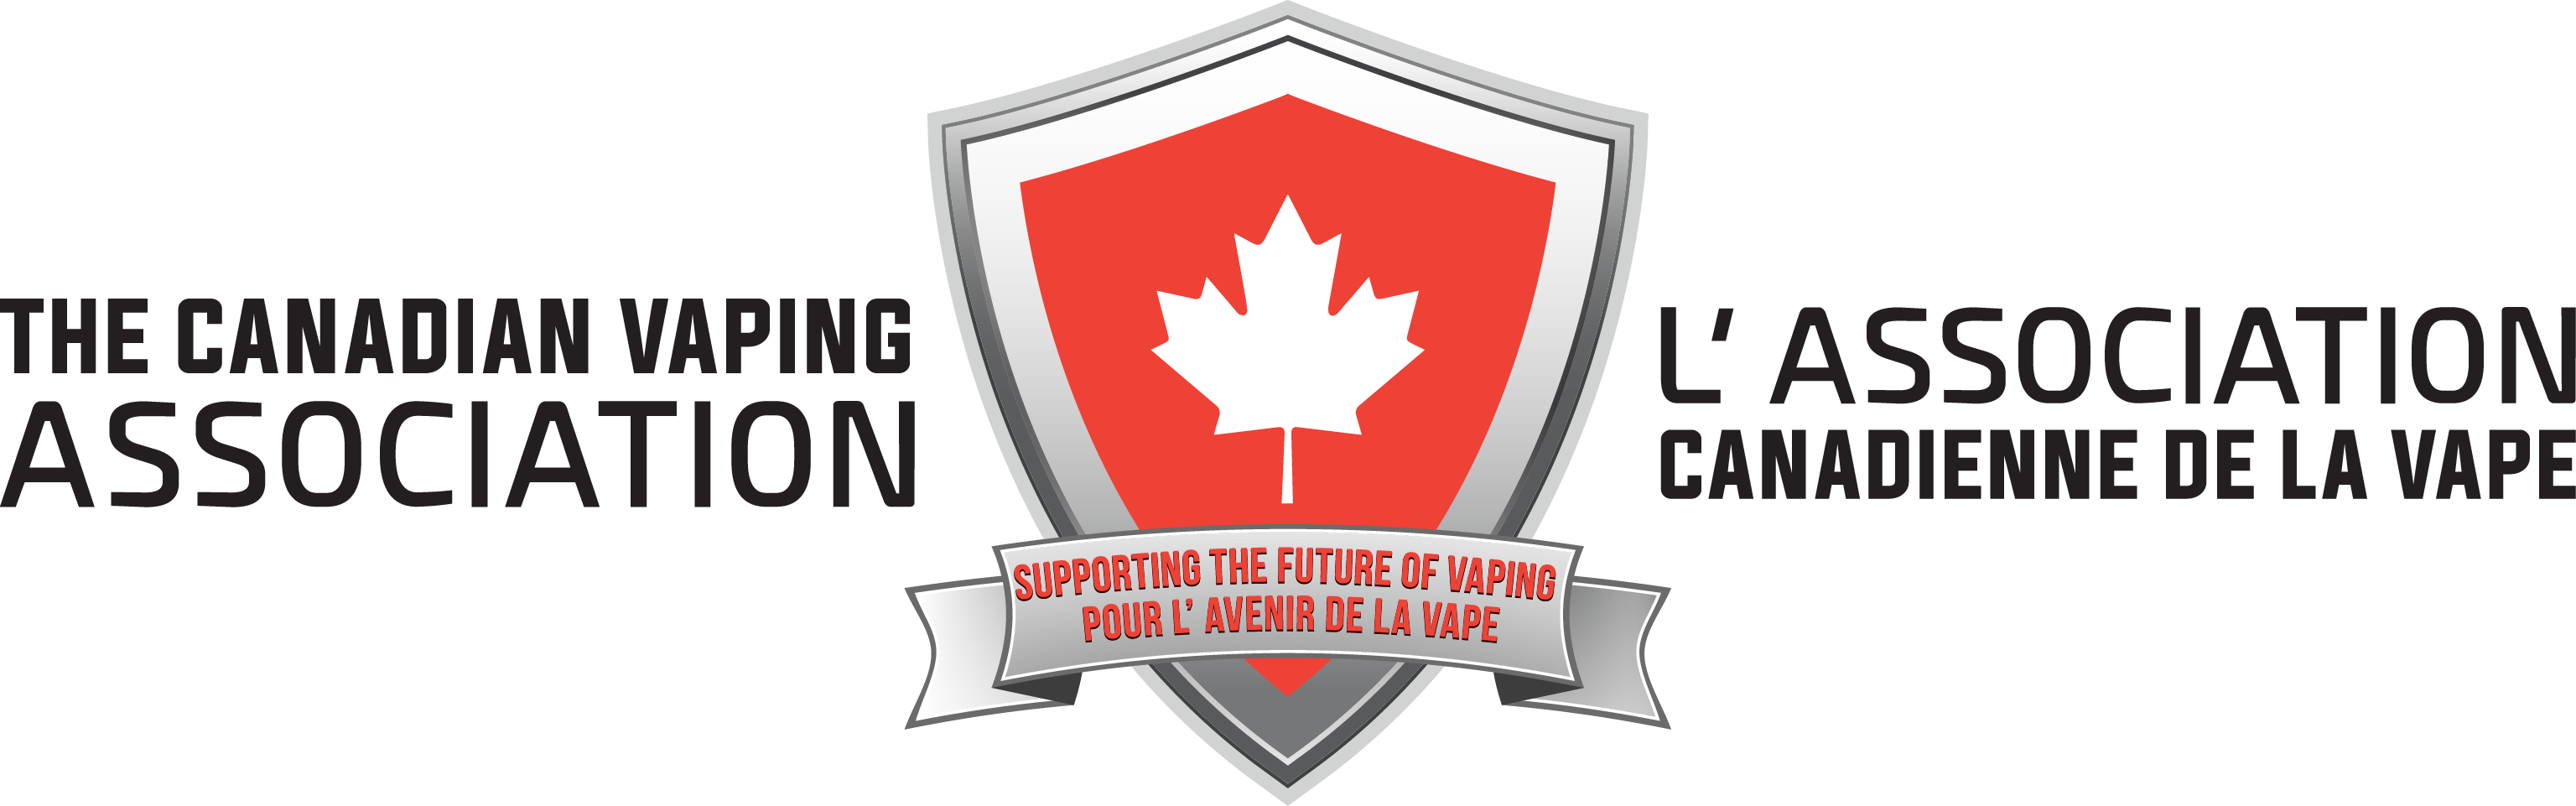 CVA L'association canadienne de la vape.